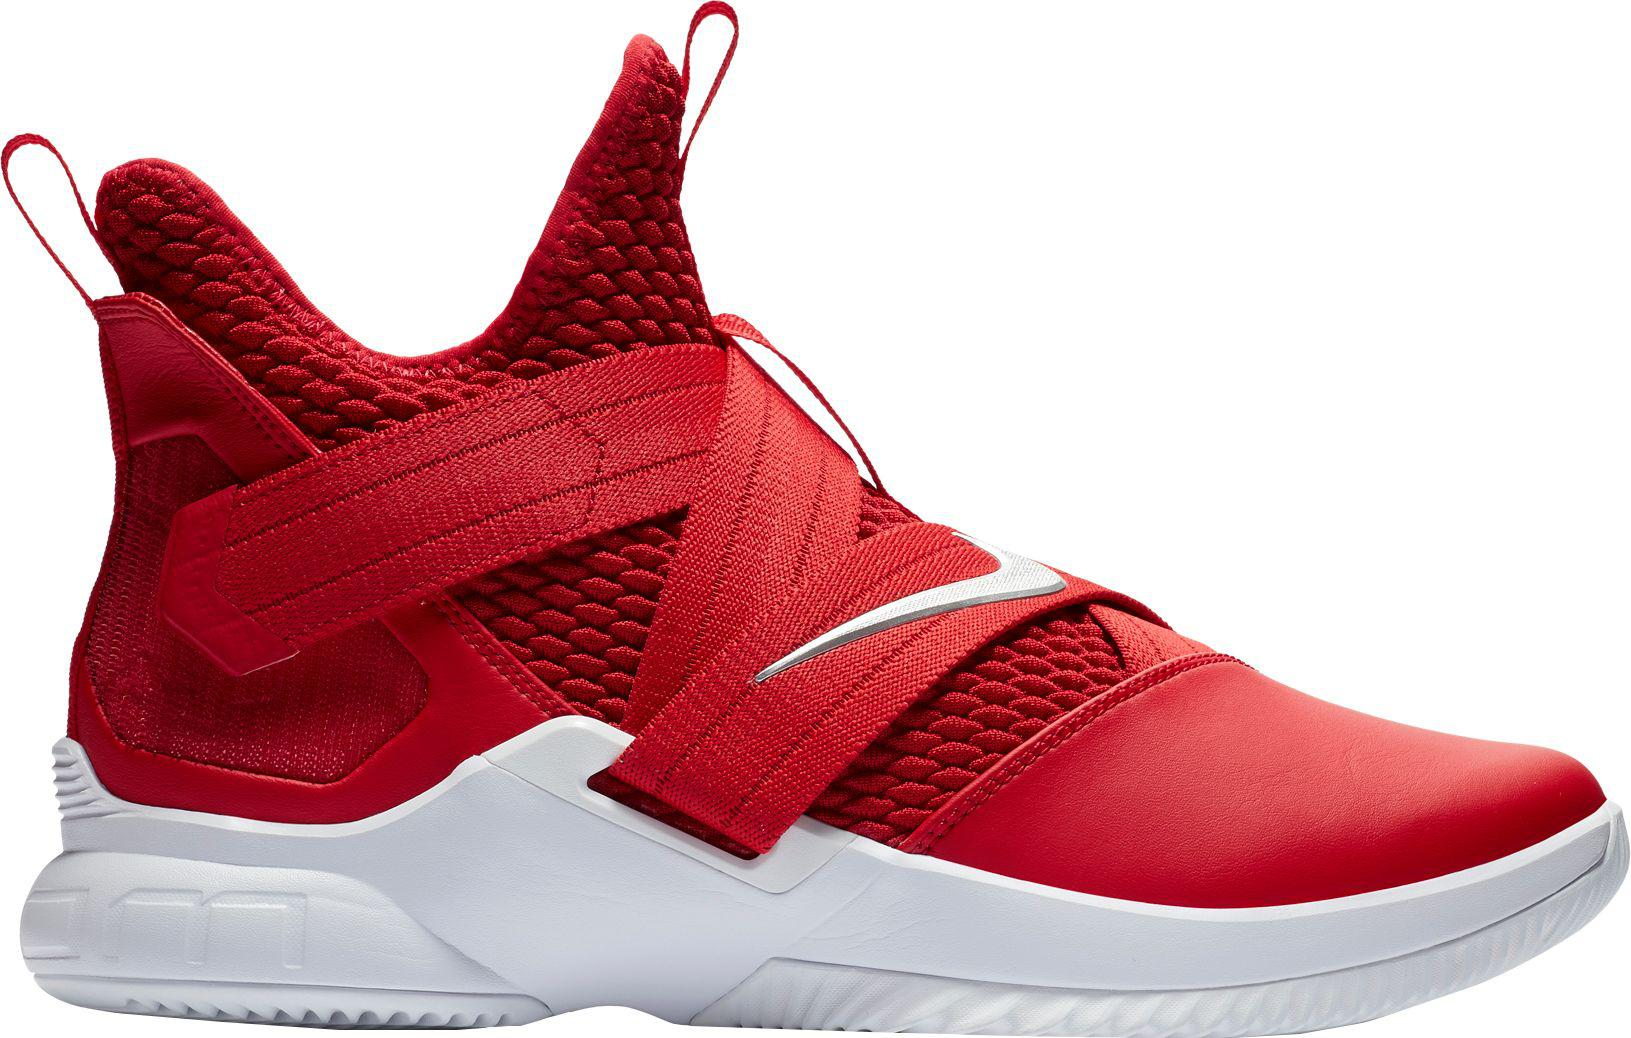 pretty nice 5244e 79c77 ... new zealand nike red zoom lebron soldier xii tb basketball shoes for  men lyst bfd81 6bb16